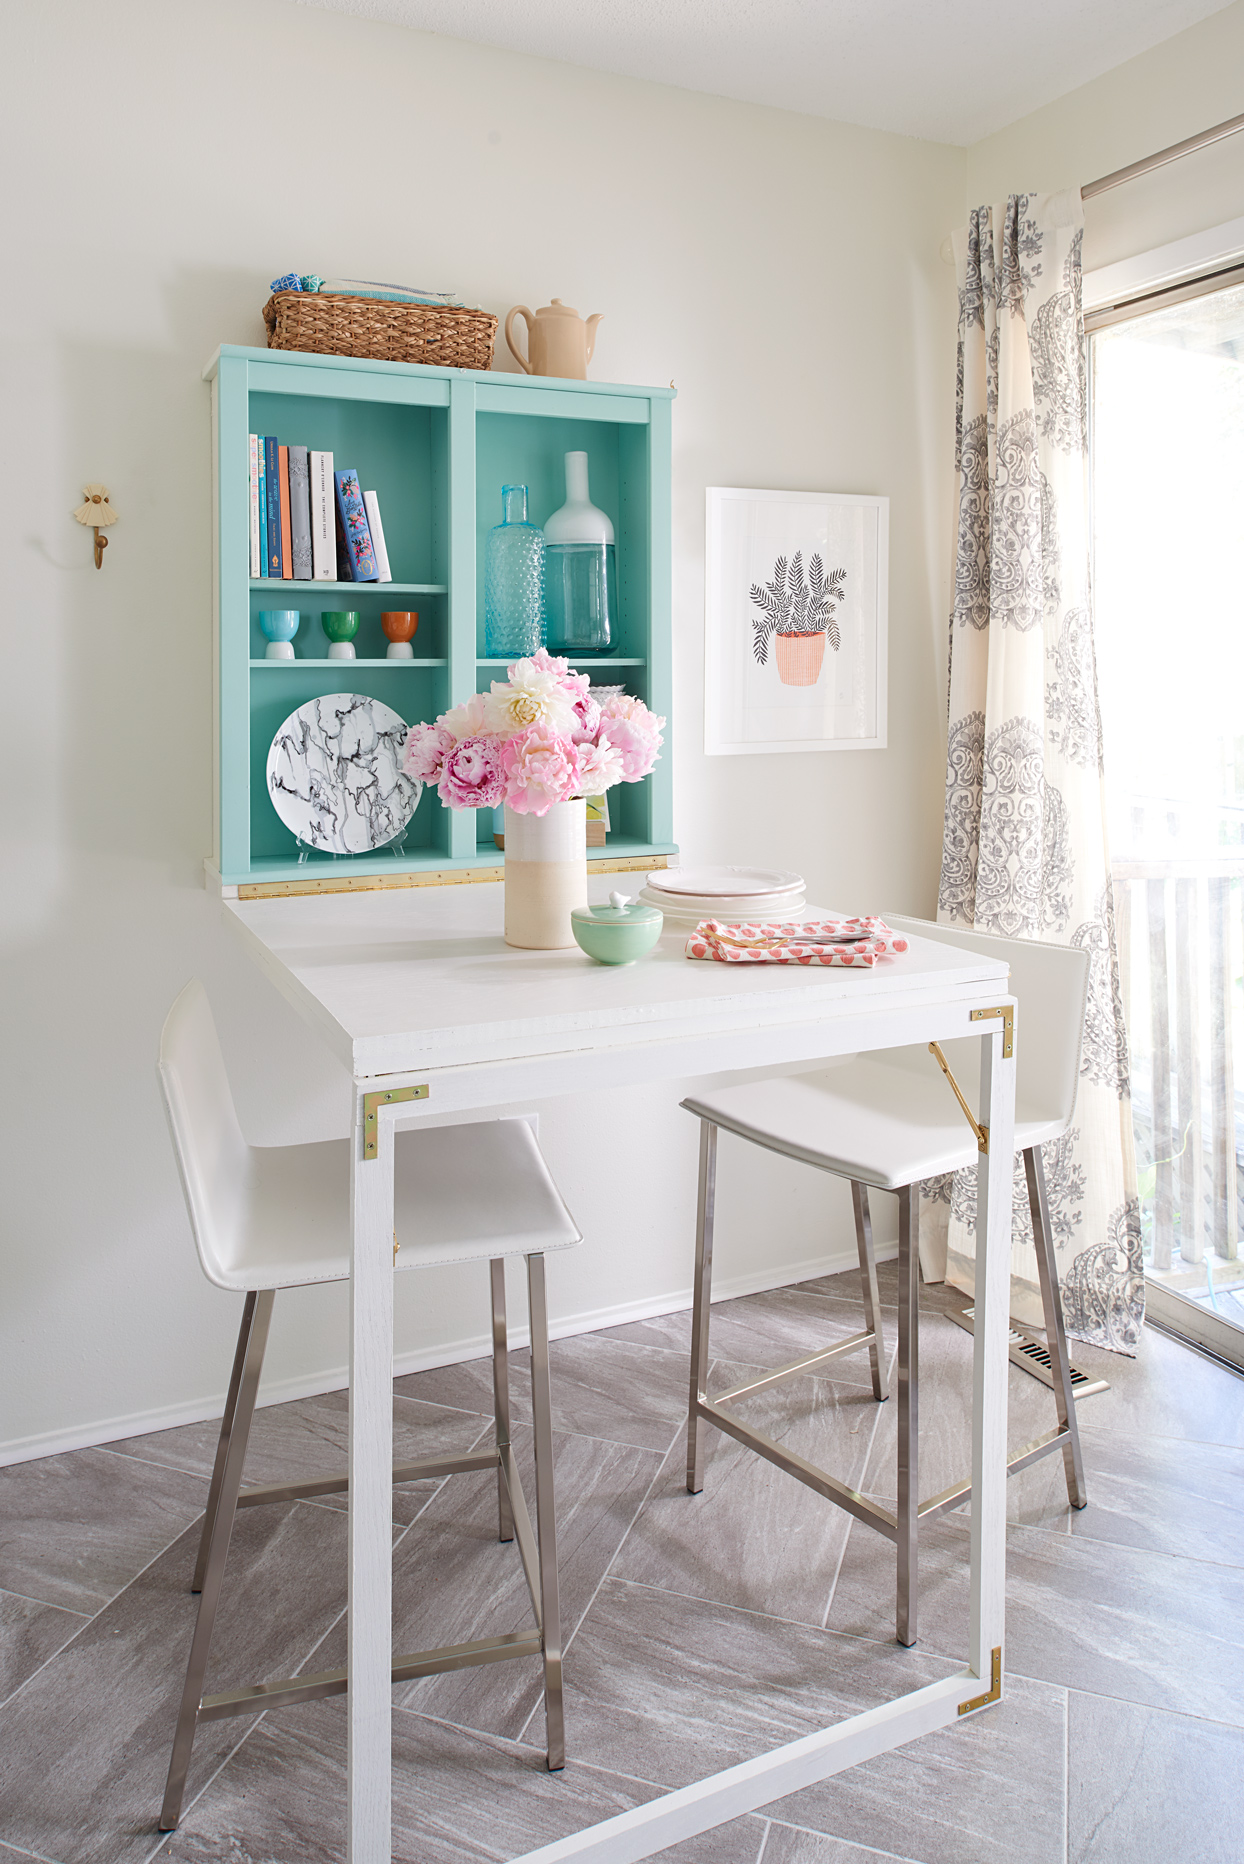 Save Space With This Adorable Fold Down Table That Doubles As A Desk Better Homes Gardens